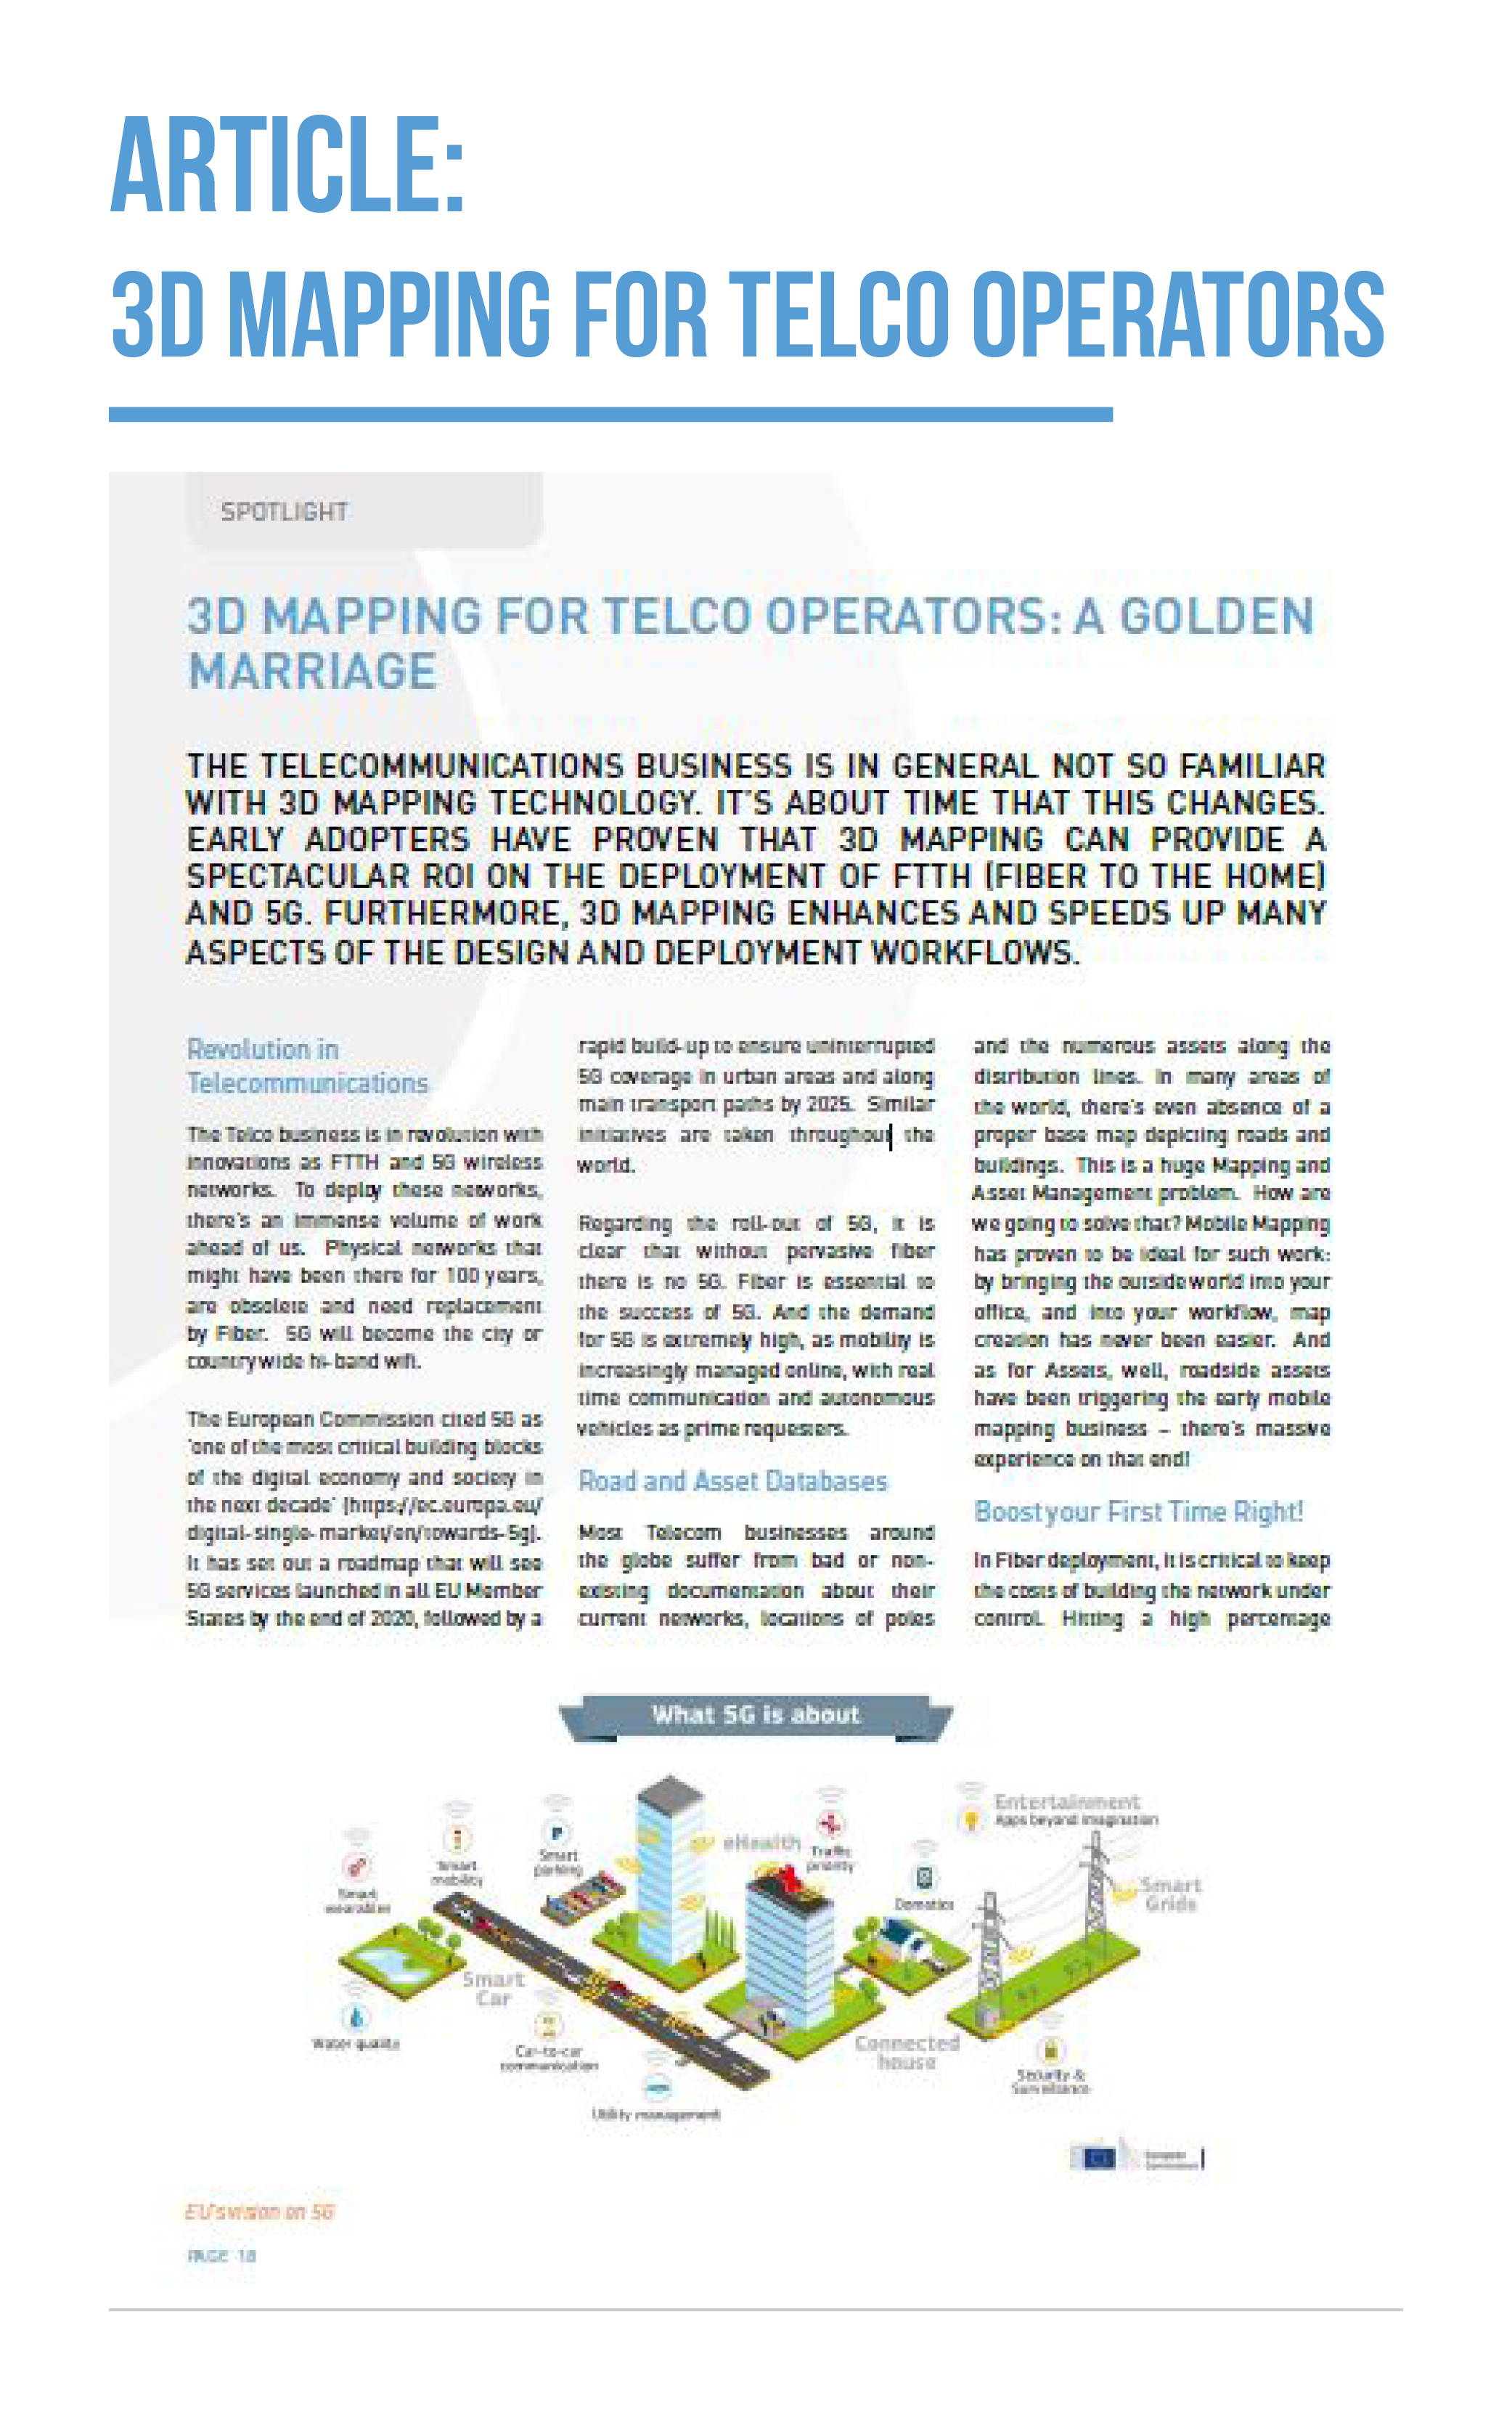 Orbit GT 3D Mapping for Telco Operators: a golden marriage